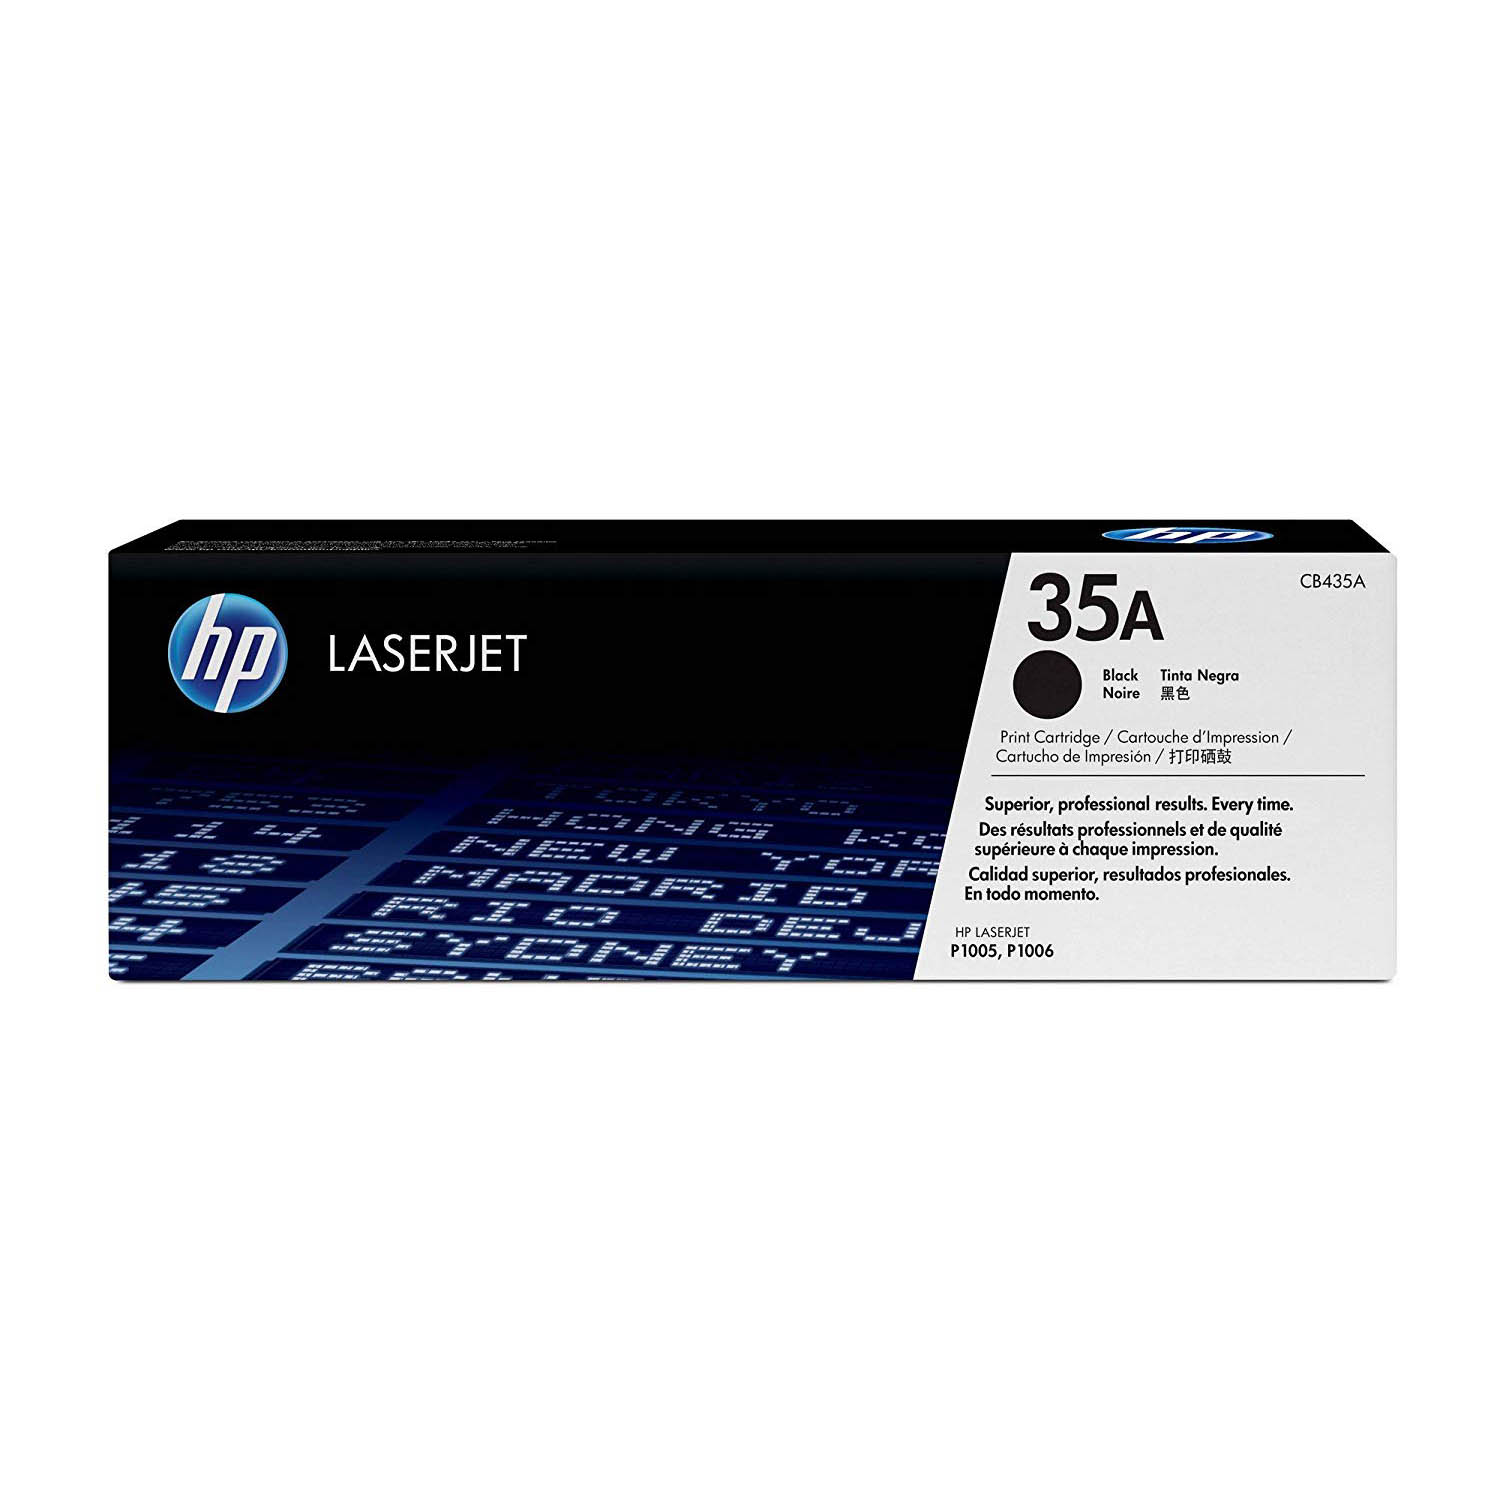 HP 35A (CB435A) Original LaserJet Toner Cartridge - Black